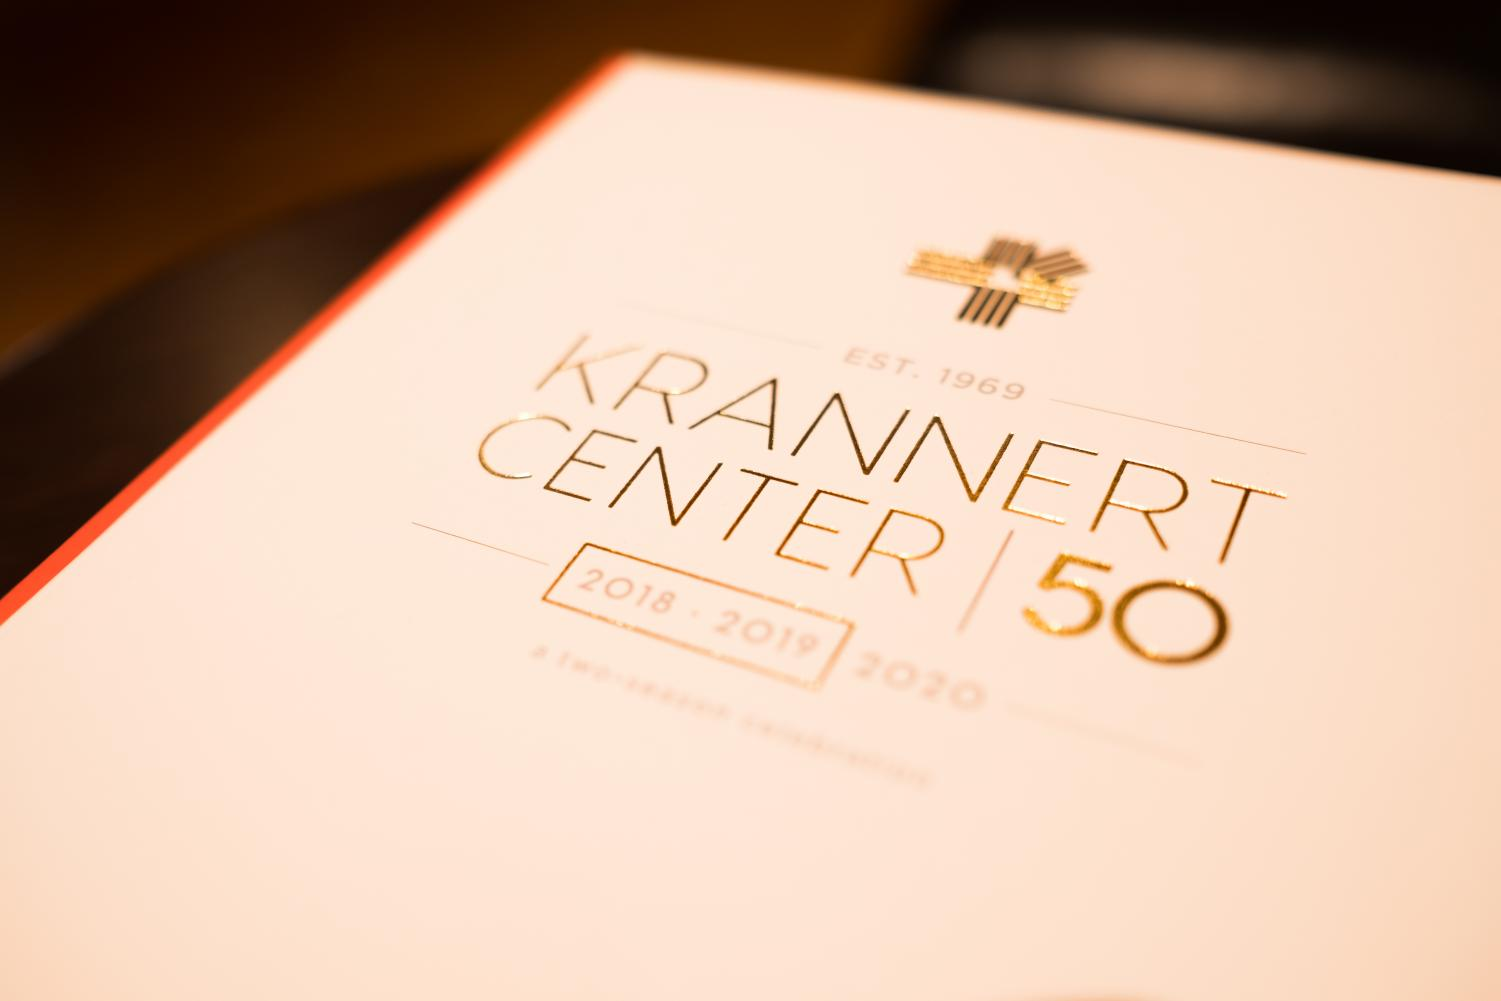 The Krannert Center 50th Anniversary handouts given to attendants in honor of the Krannert Center's 50th season.